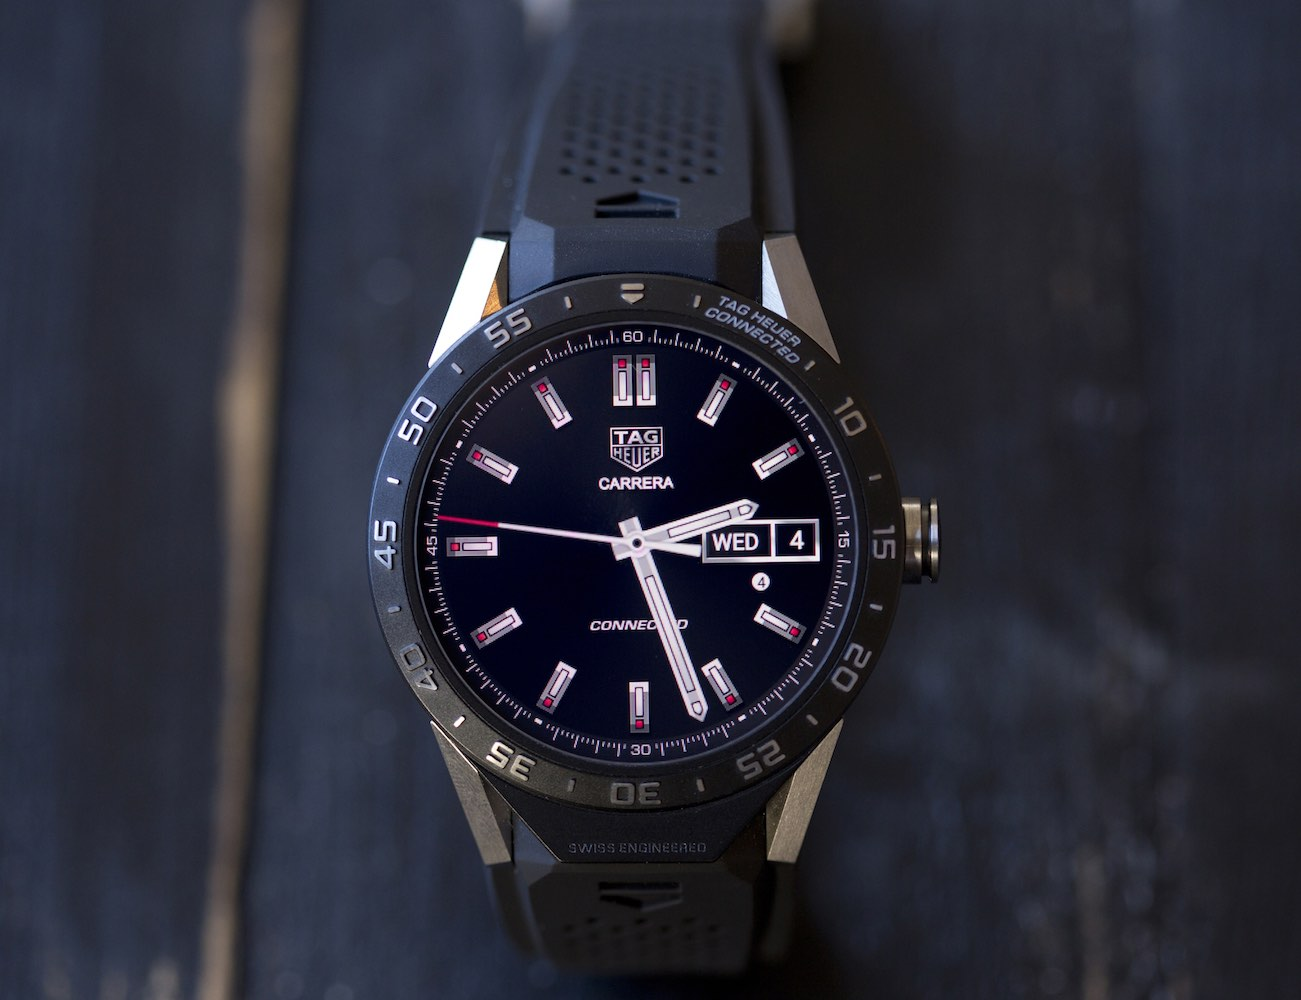 Product Design: Wrist Watches